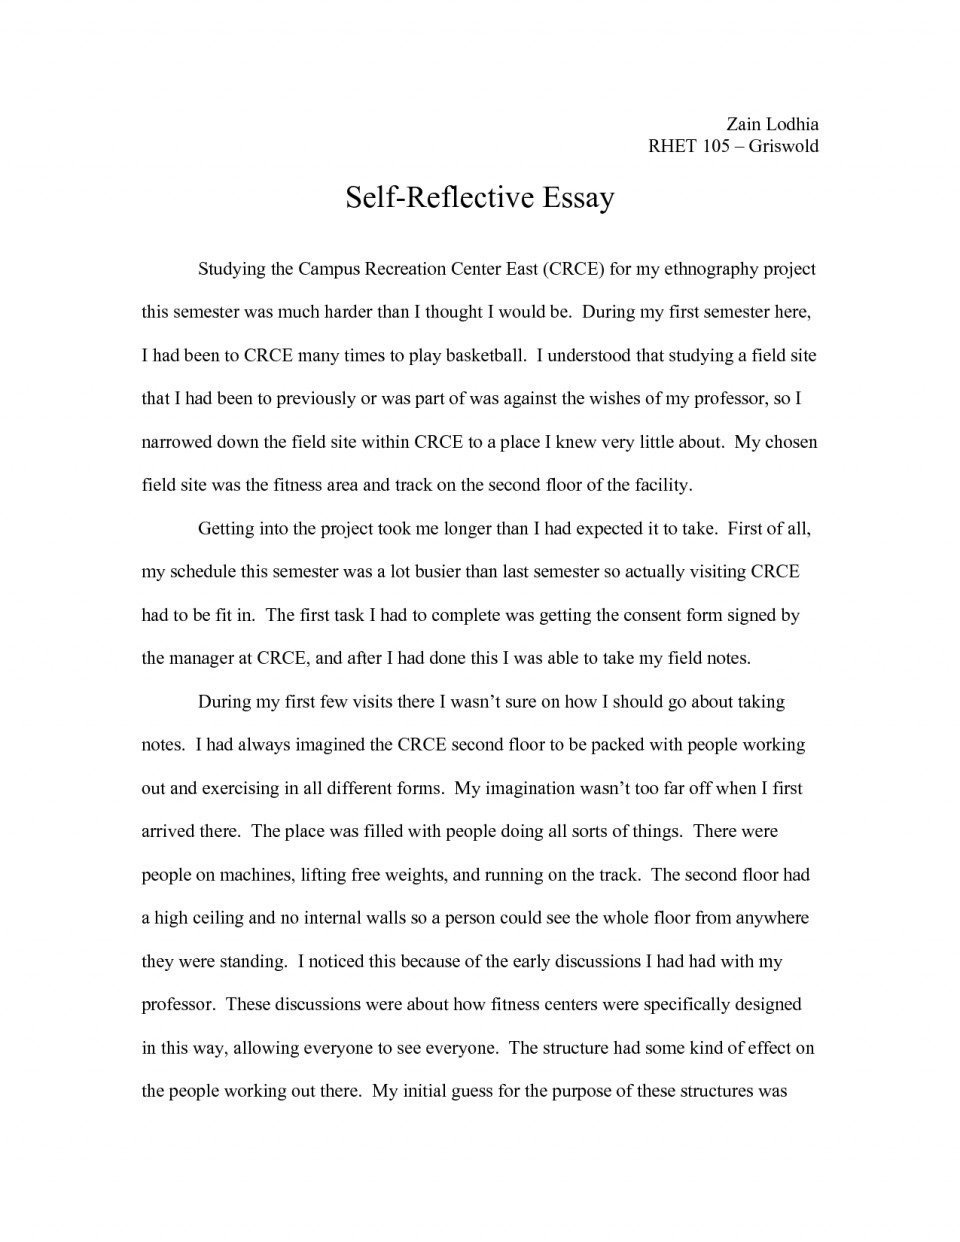 003 Qal0pwnf46 Reflective Essays Beautiful Essay Examples For Middle School Apa High 960